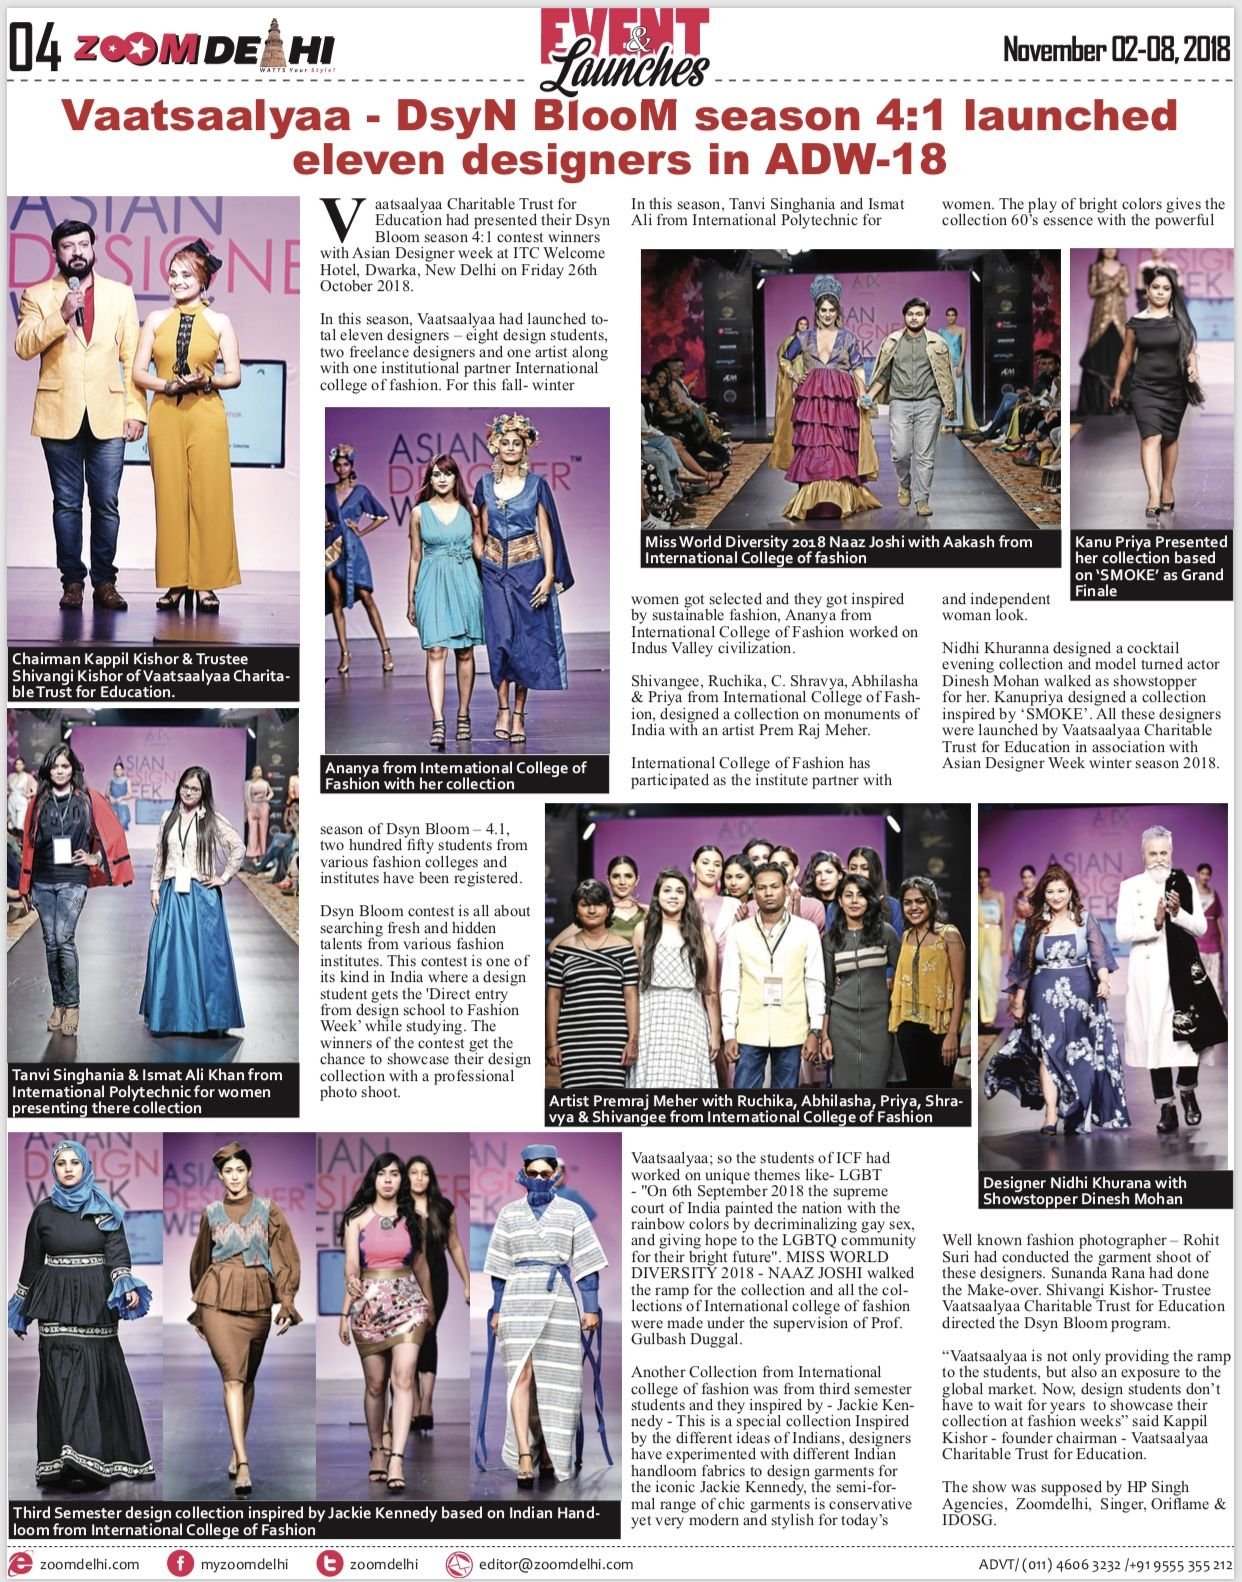 Zoomdelhi News Coverage Of Designers Launched By Vaatsaalyaa Dsyn Bloom Concept By Dr Kappil Kishor In Asian De Asian Designers College Fashion Product Launch